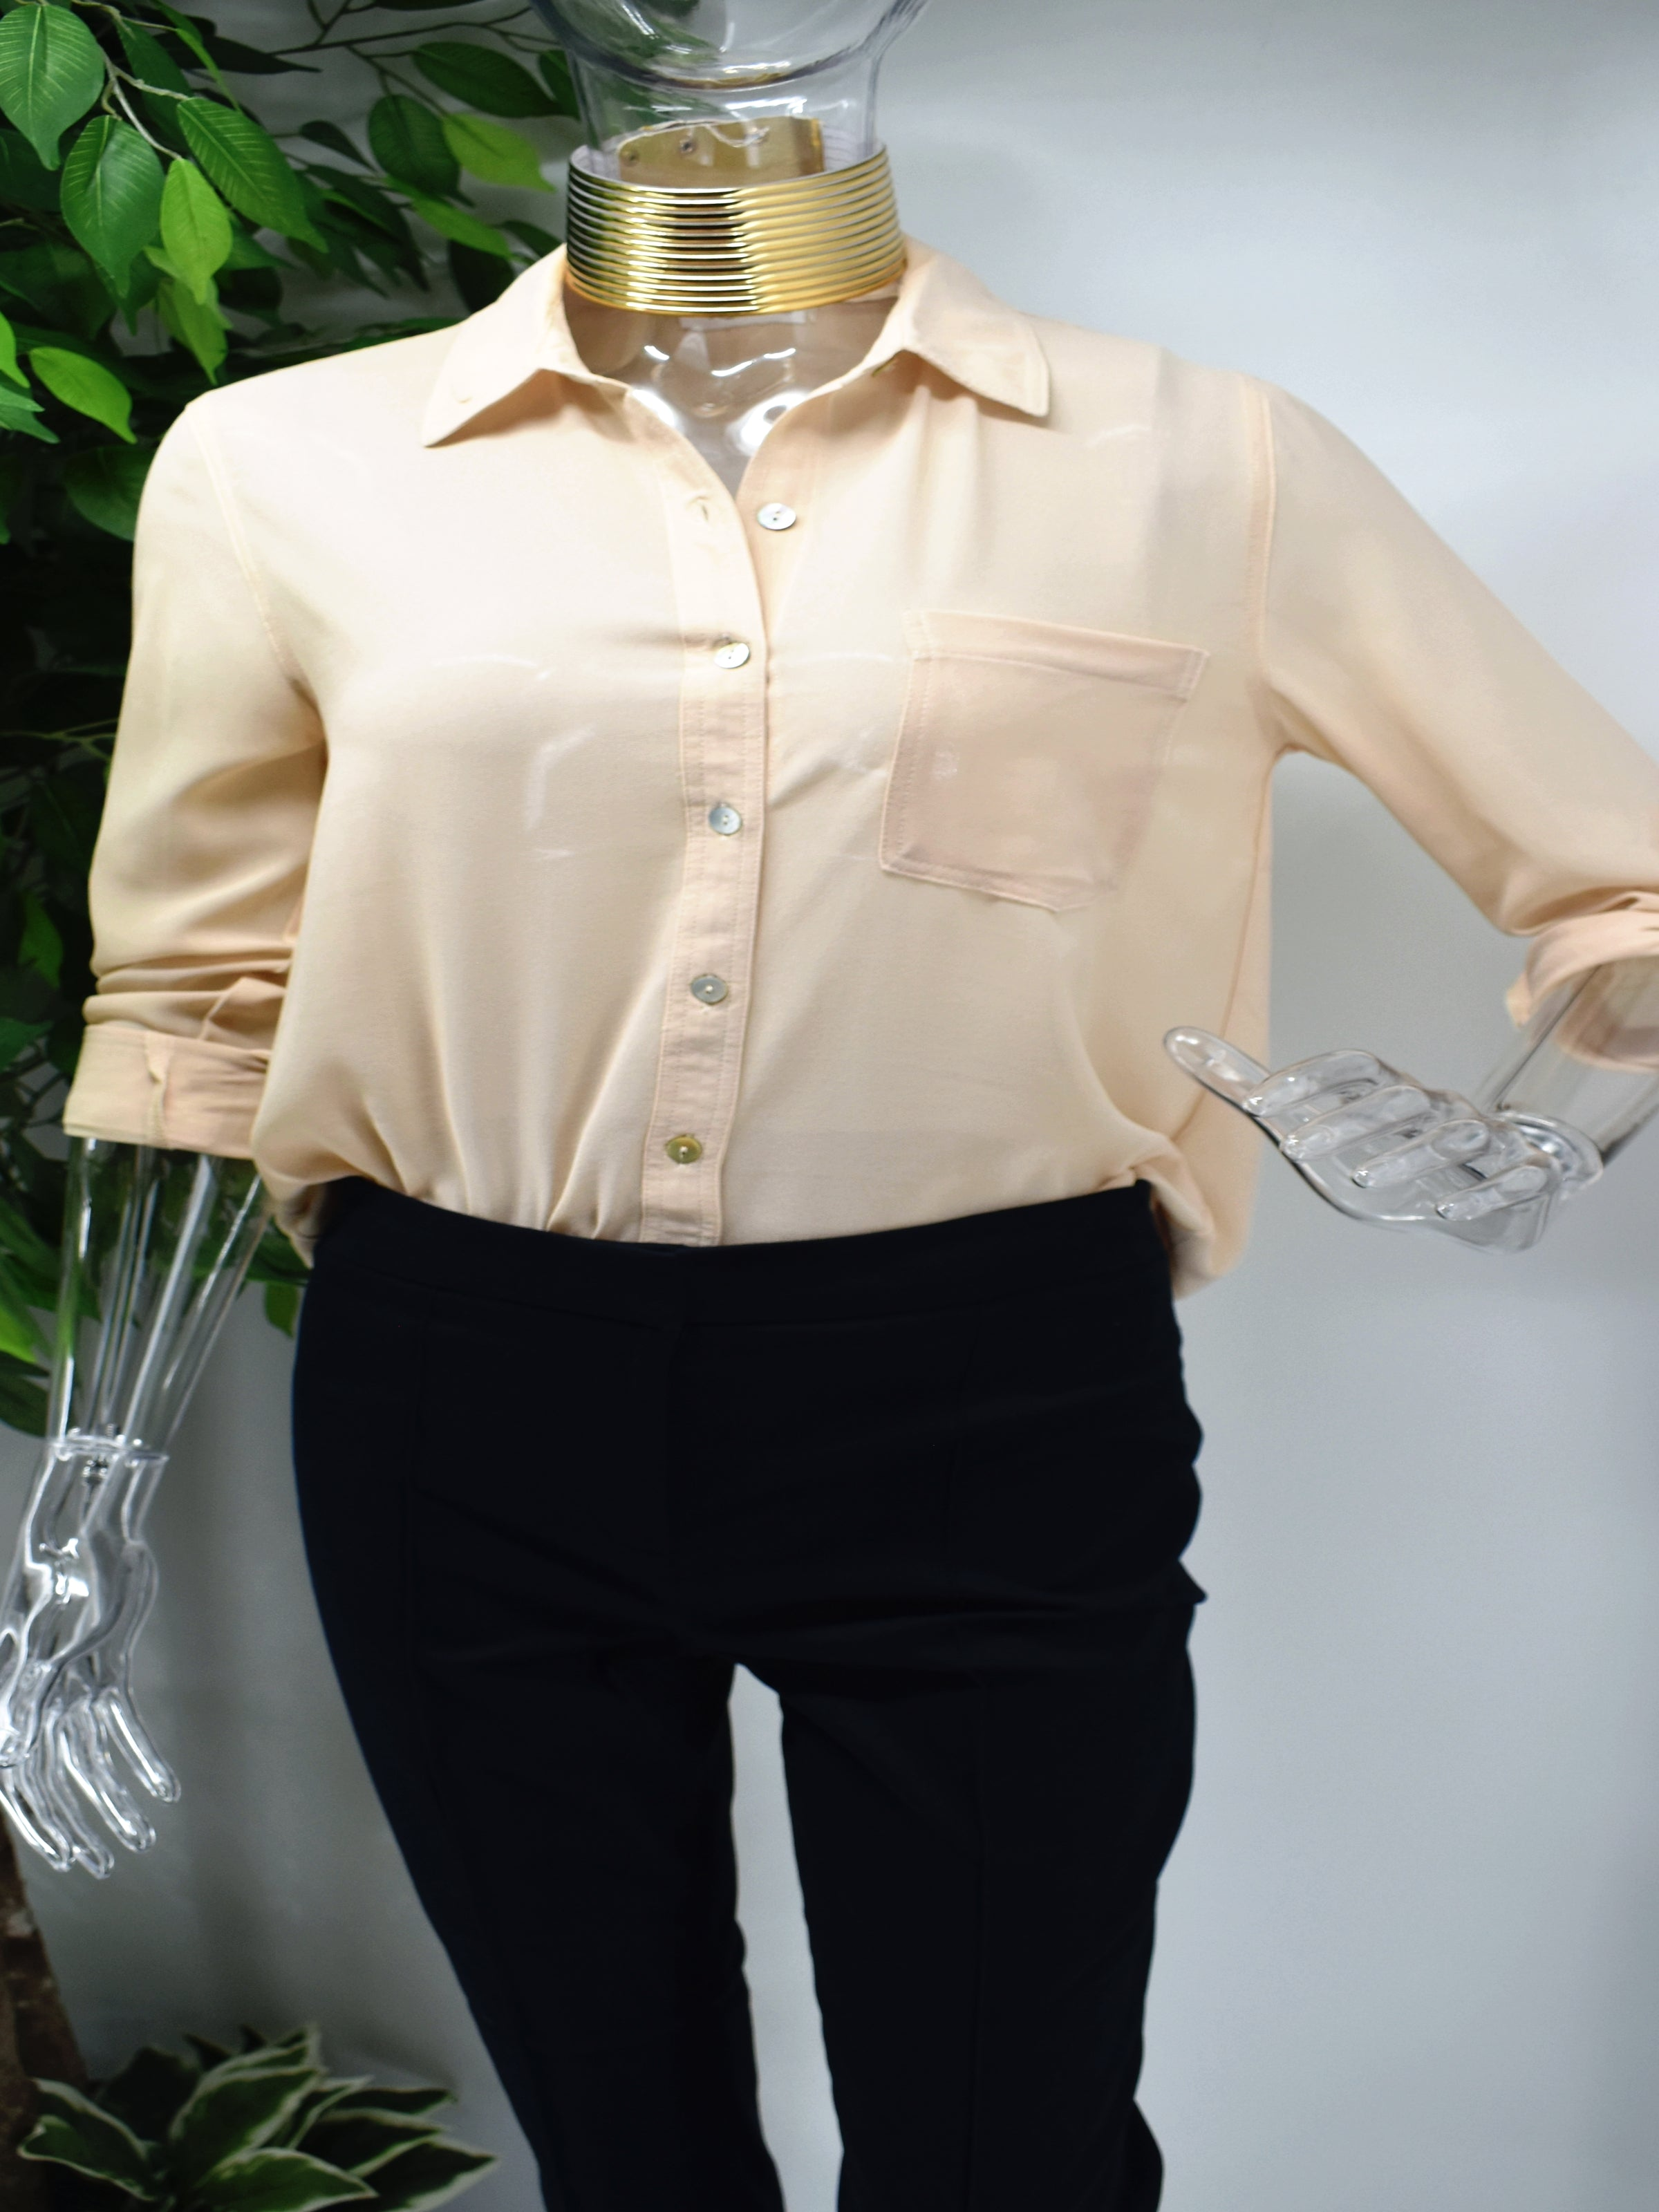 Enjoy an elegant design that never fades with our classic Bayla shirt blouse. Our Bayla is a beige button front shirt blouse loose in fit with a classic rolled cuffed sleeve.